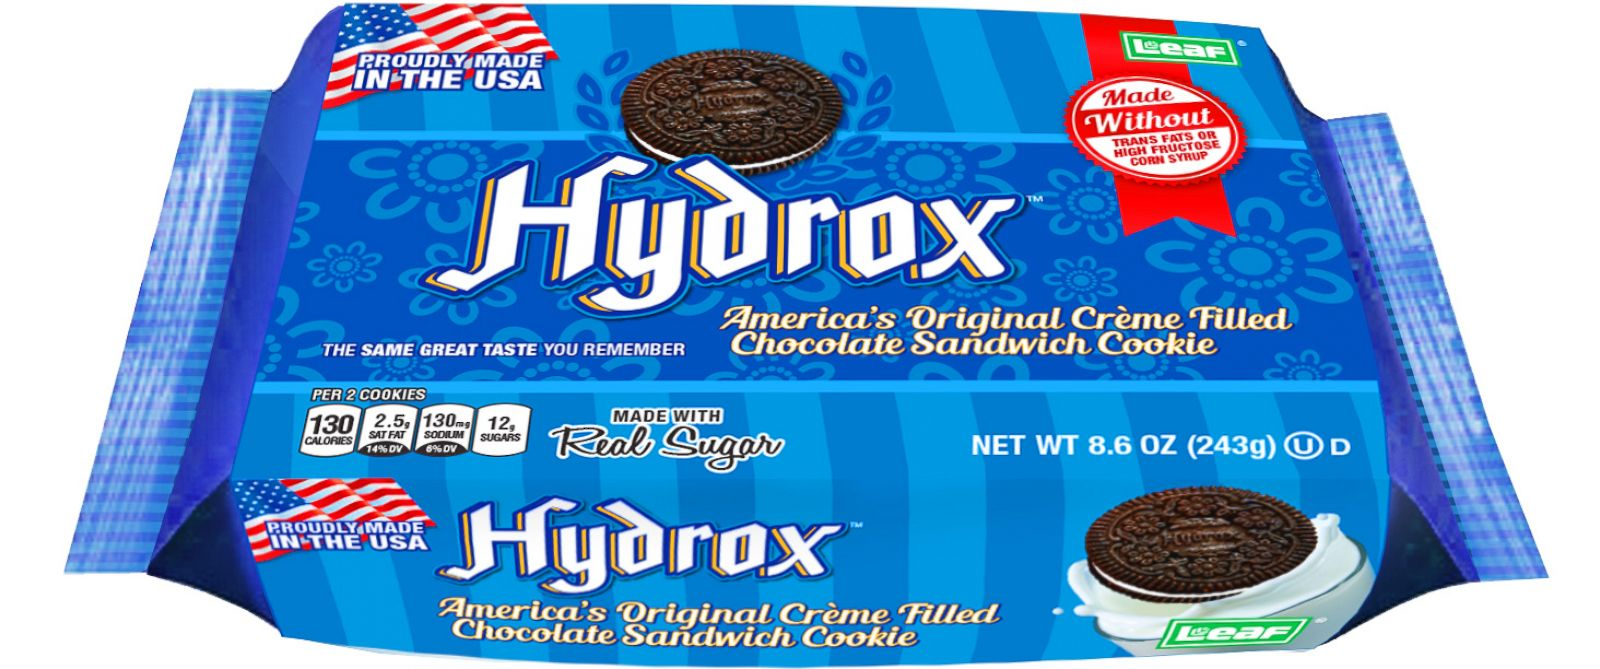 For Hydrox Cookie, Donald Trump's Anti-Oreo Comments Mean ...